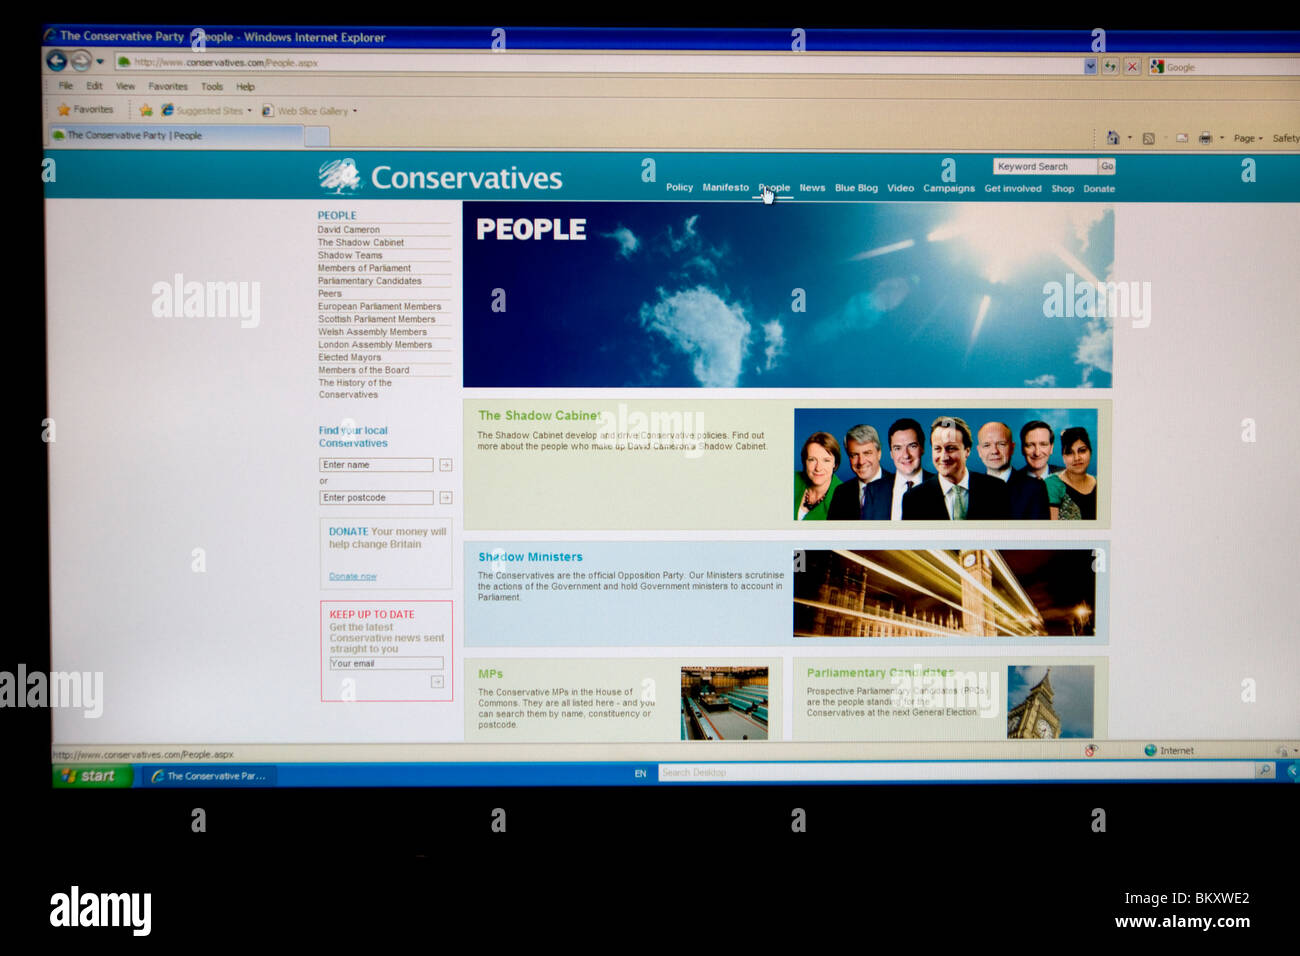 Conservative Party Website showing David Cameron, Prime Minister - Stock Image